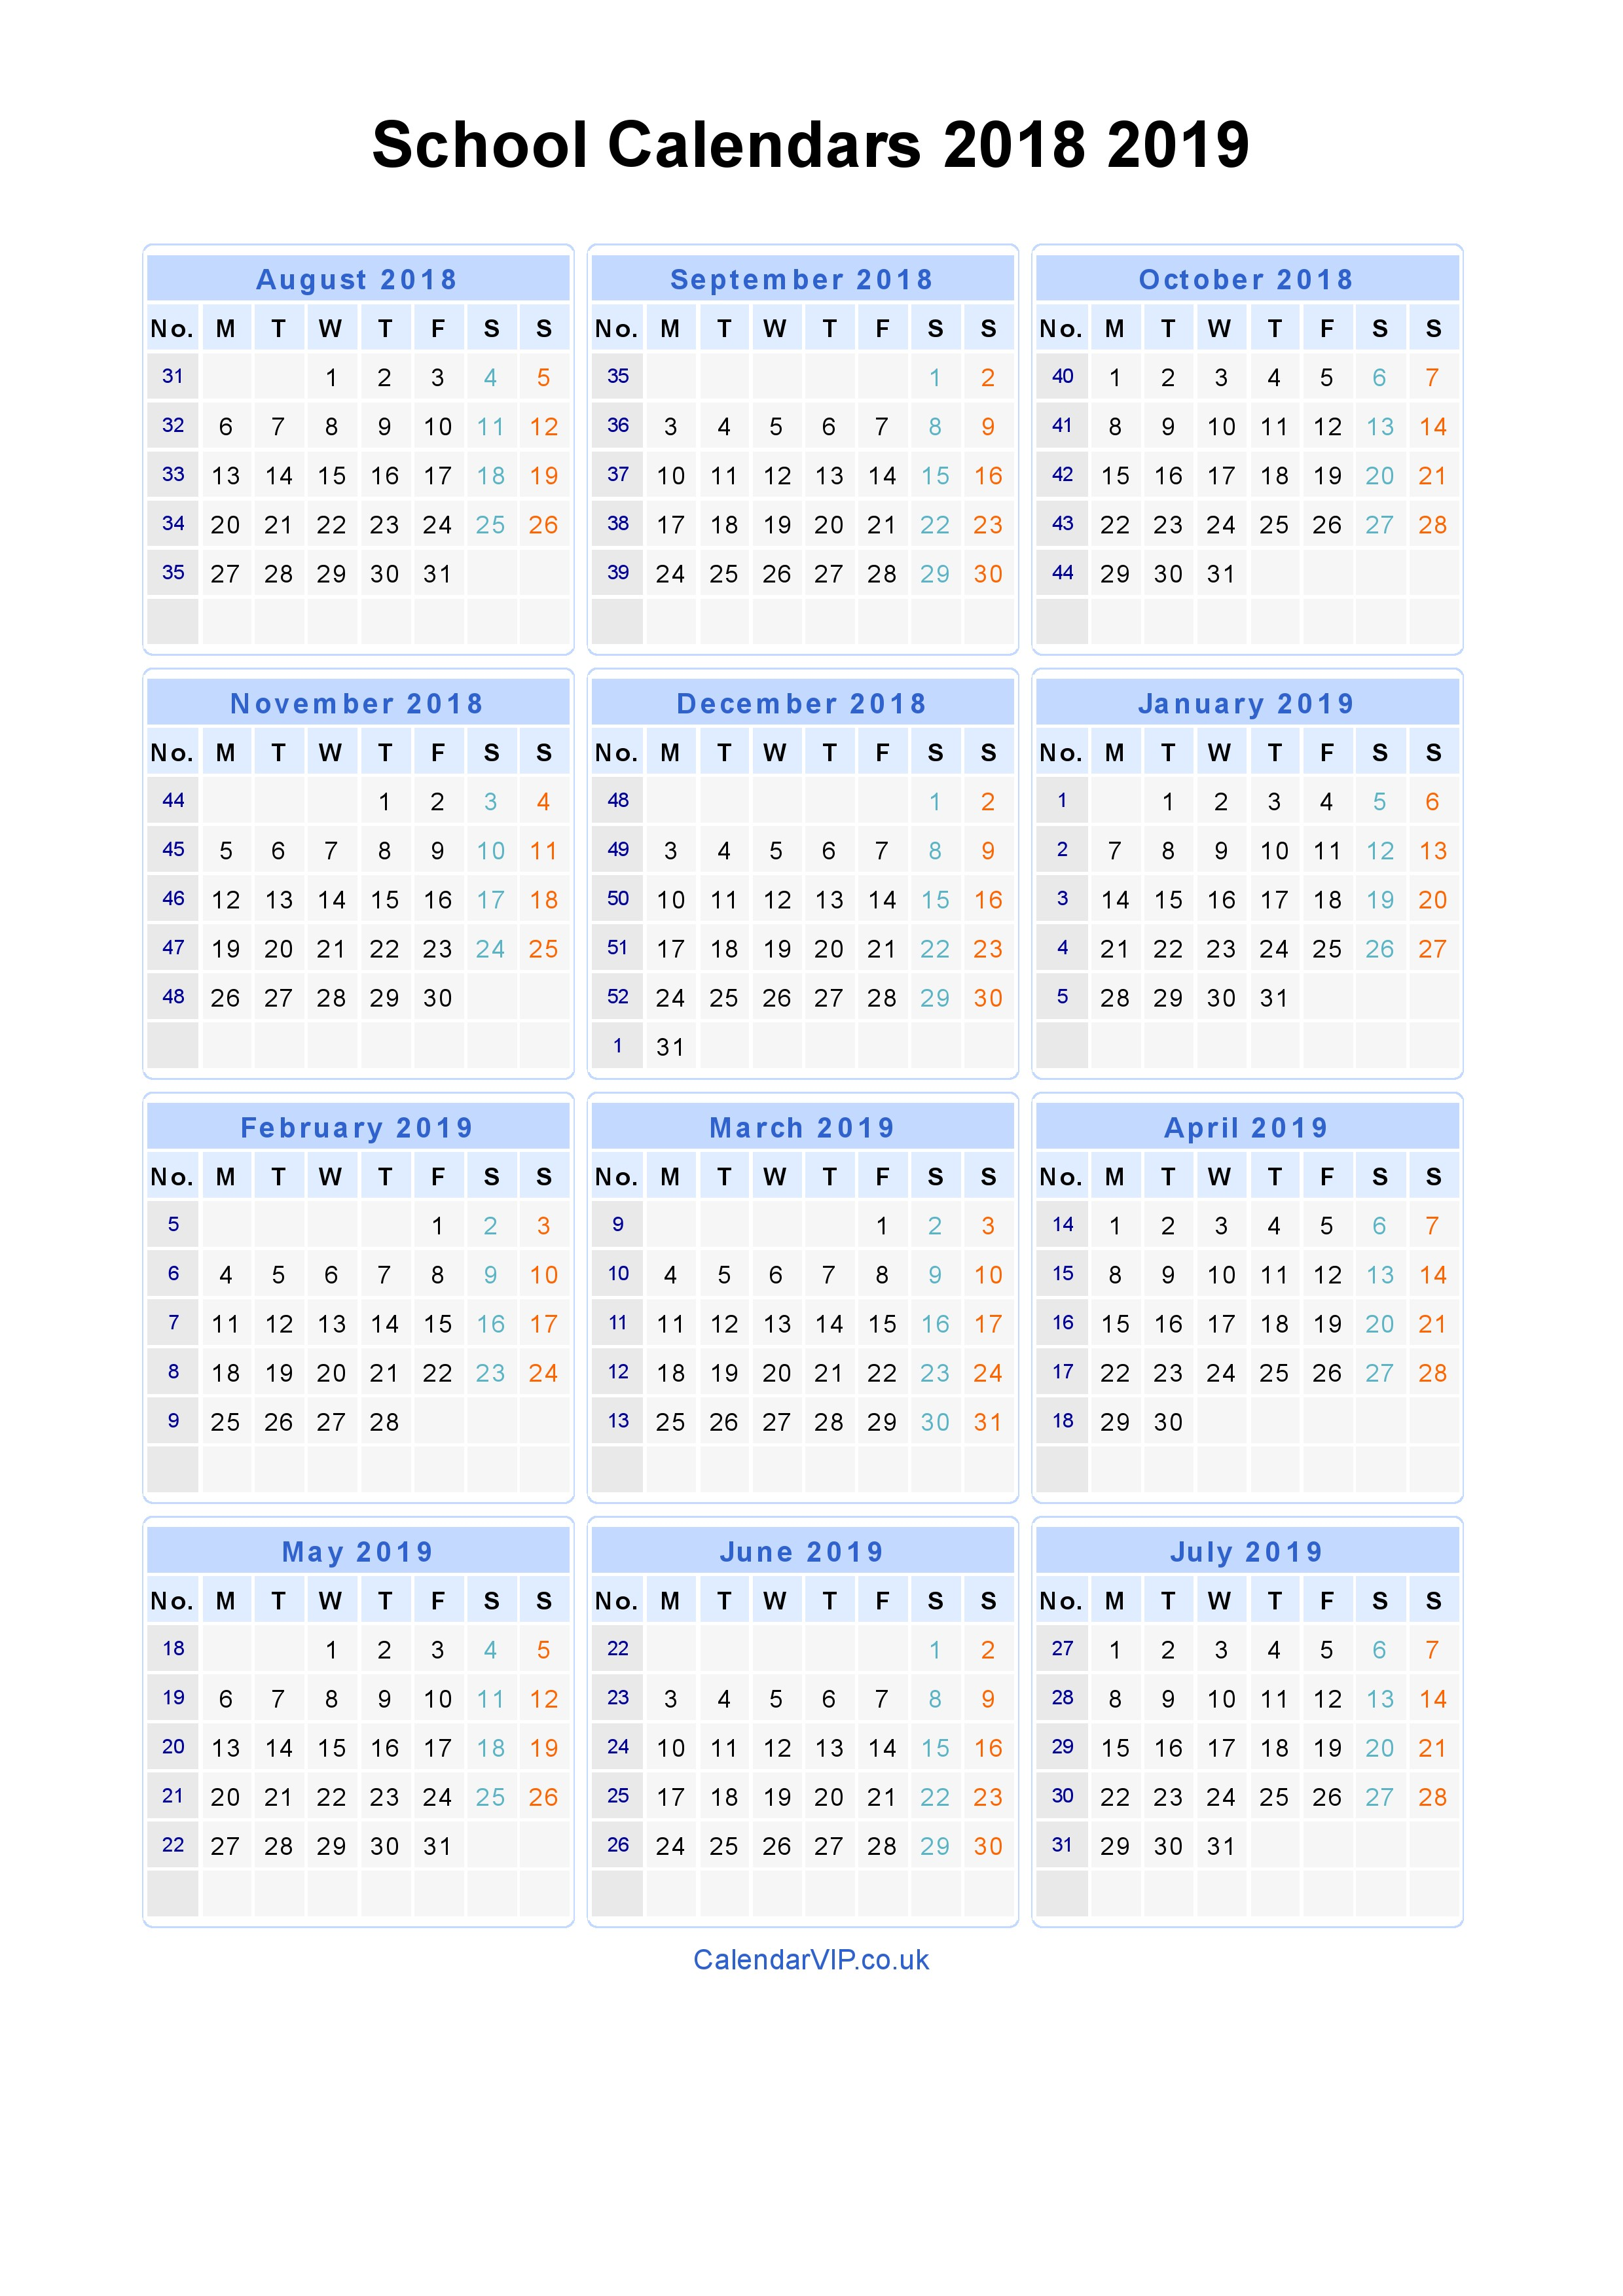 2019 Year View Calendar With School Calendars 2018 From August To July